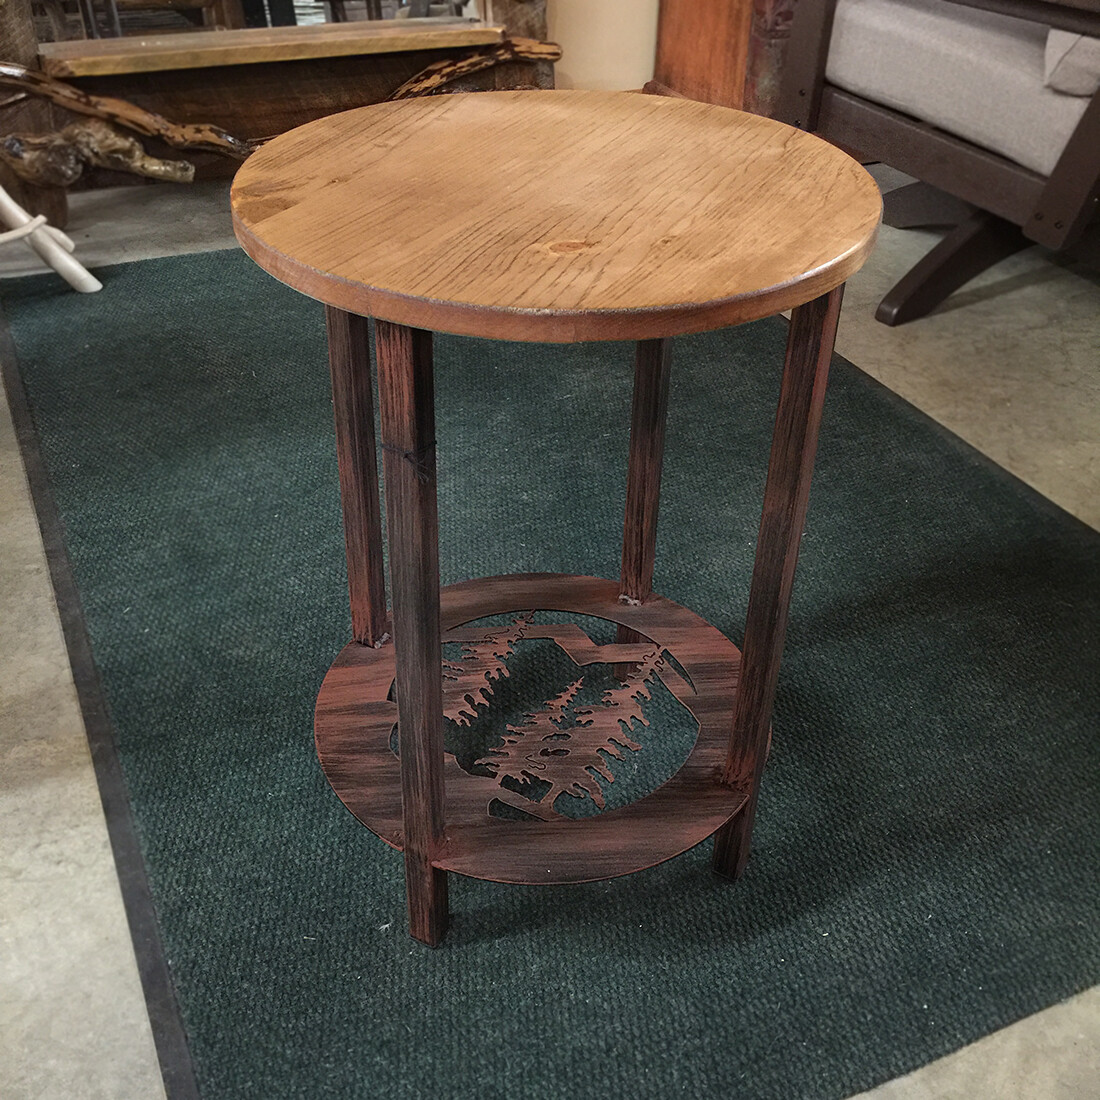 Round Metal End Table with Feather Tree Scene